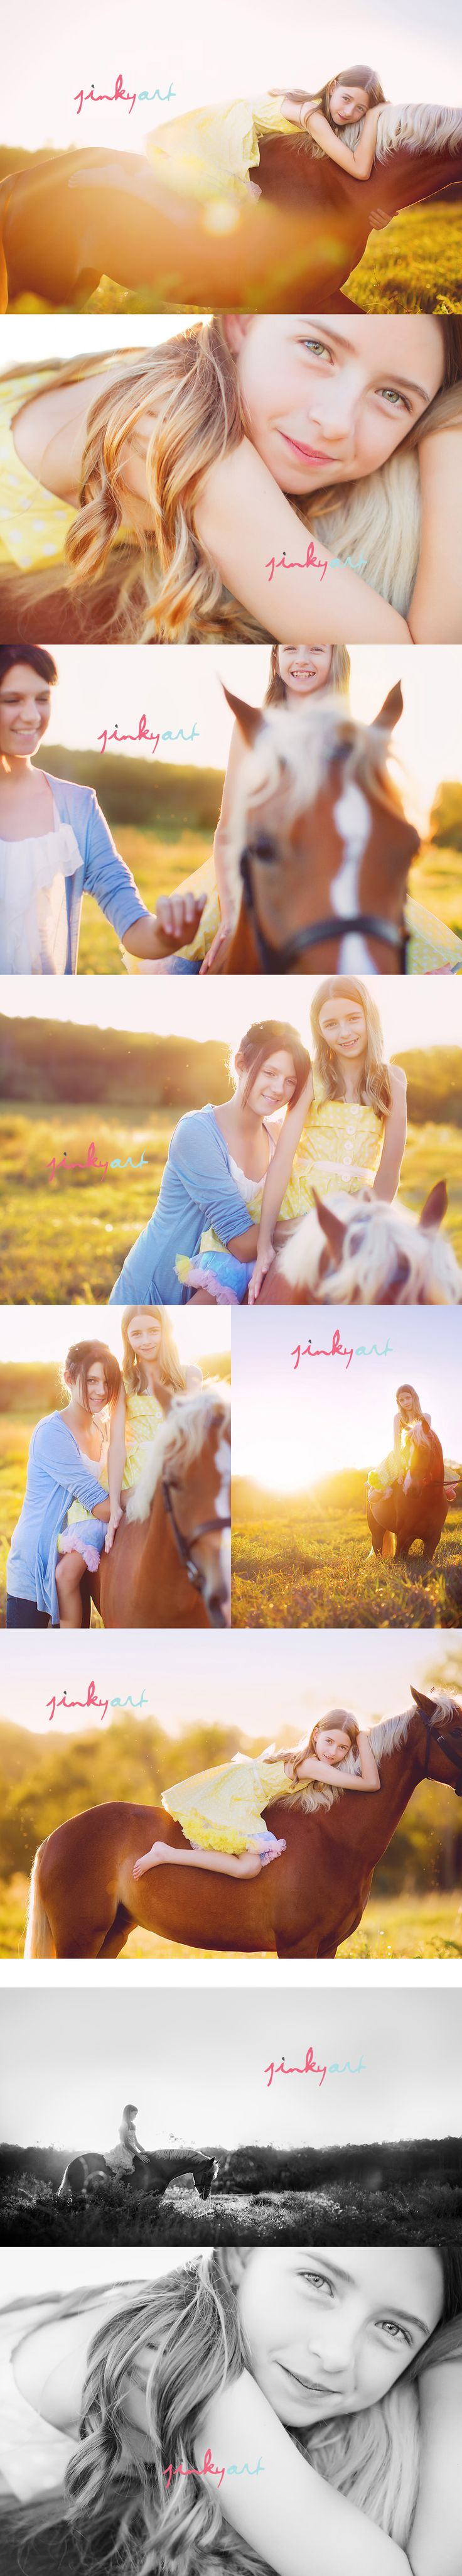 girls with their horses....love. individuals or grouped? by size? dresses & boots